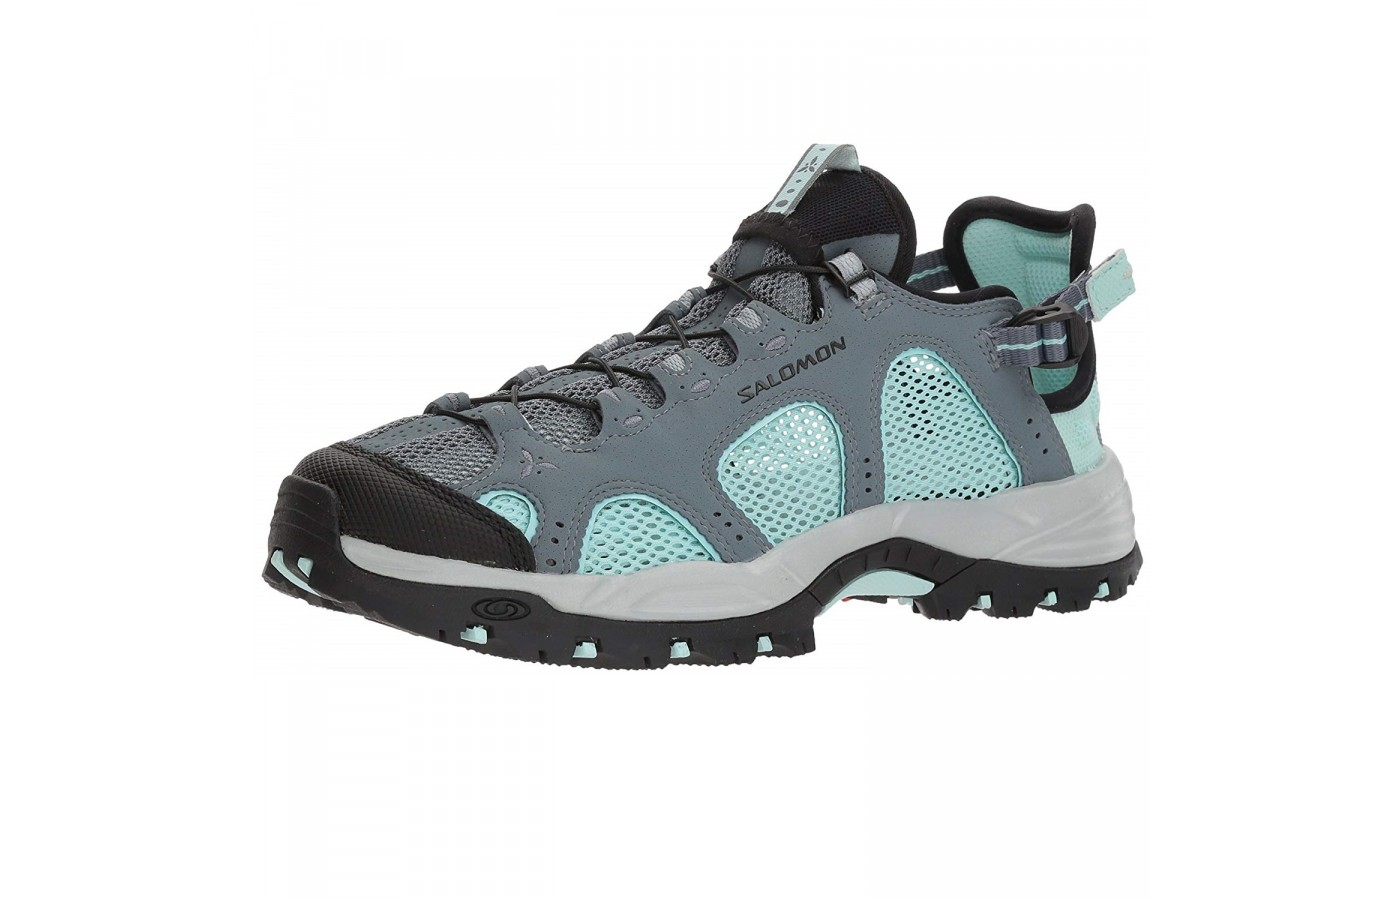 The Salomon Techamphibian 3 offers an elastic lacing system with back straps for a more secure and customized fit.